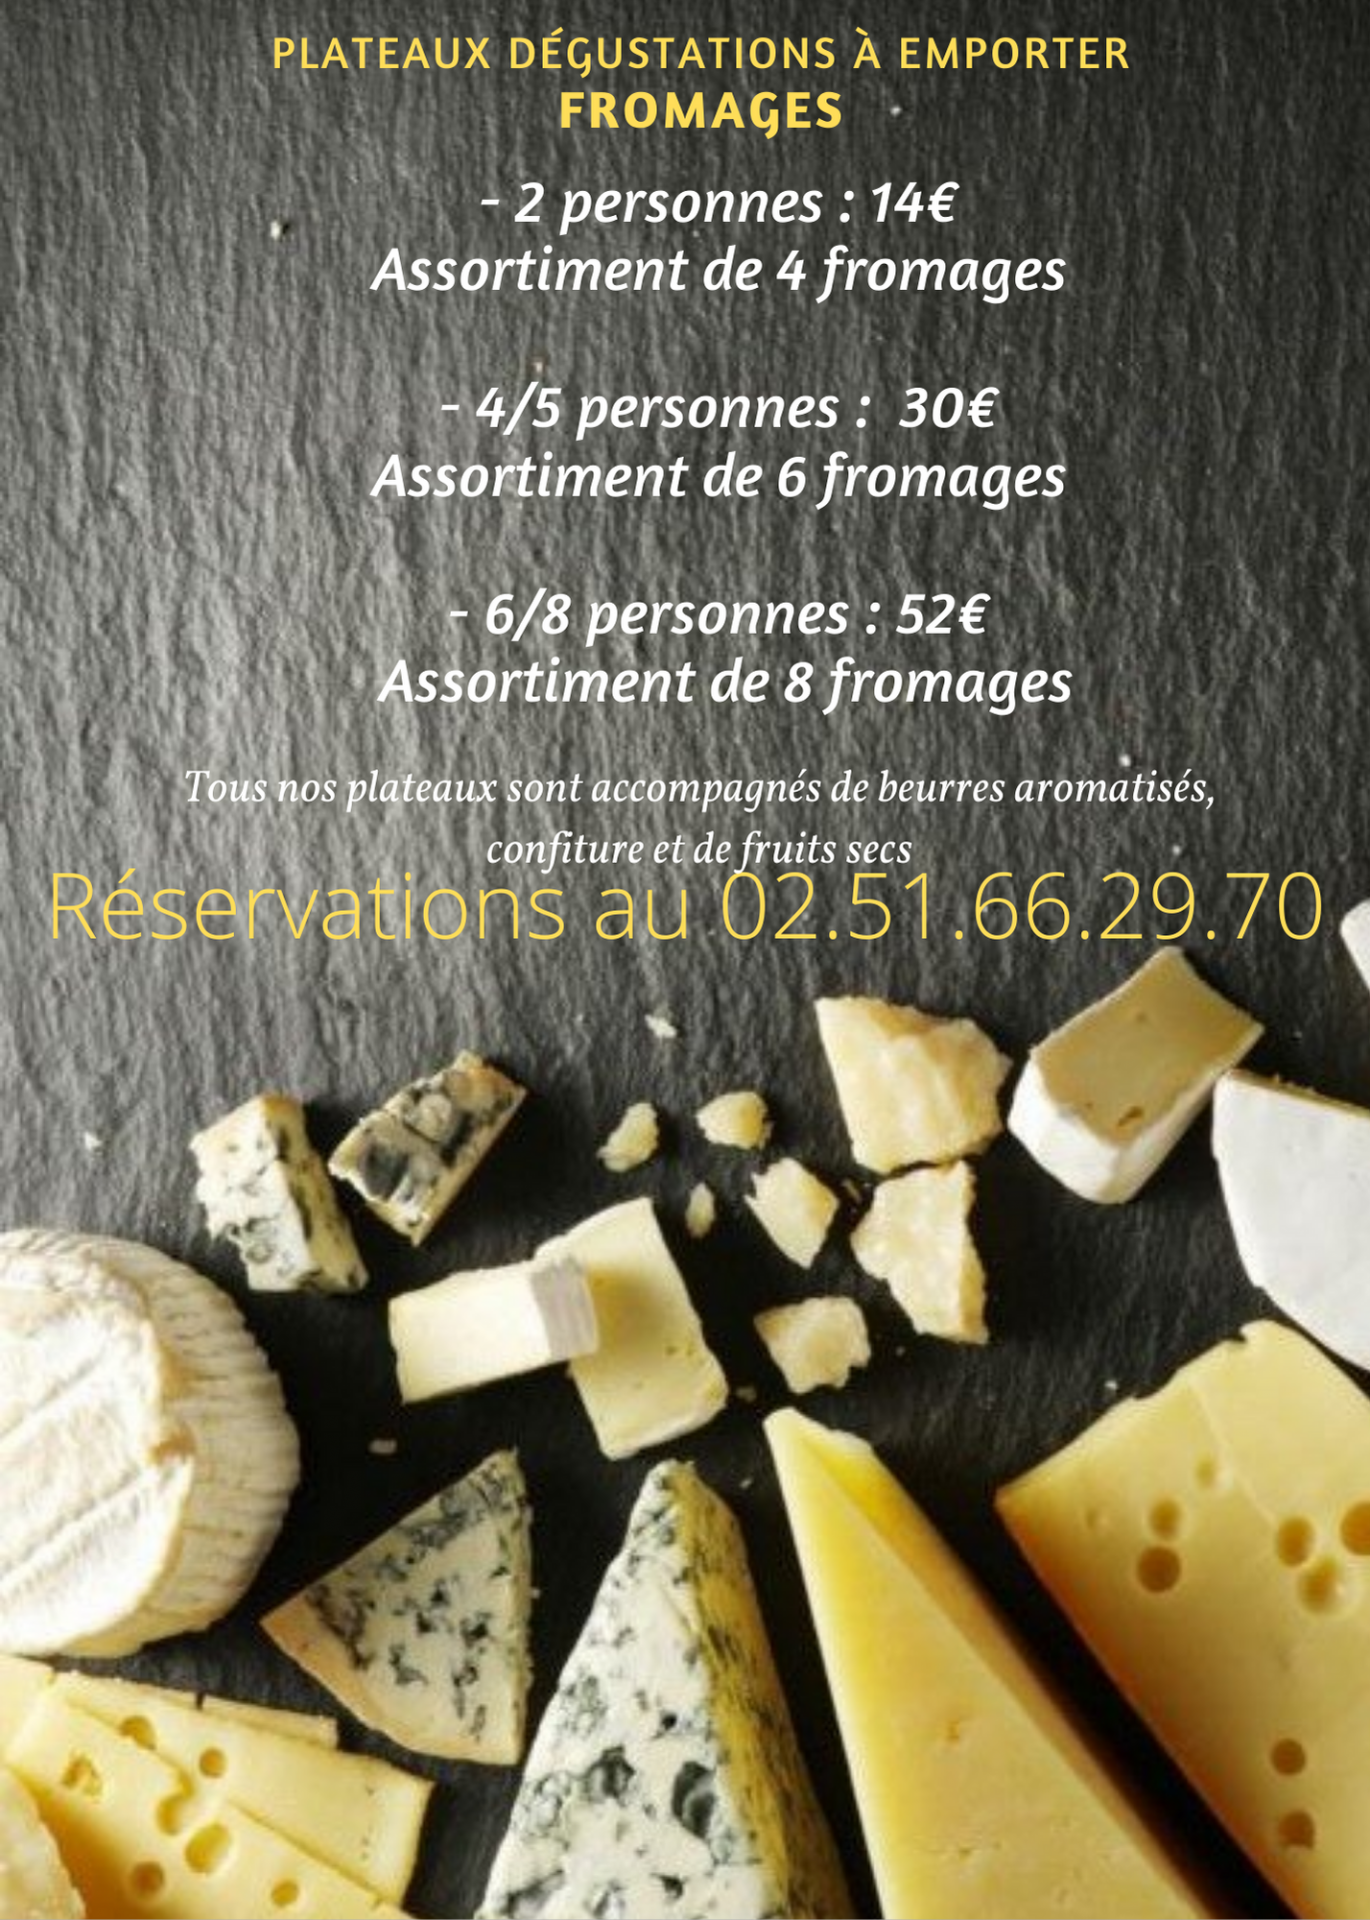 Plateaux degustations fromages